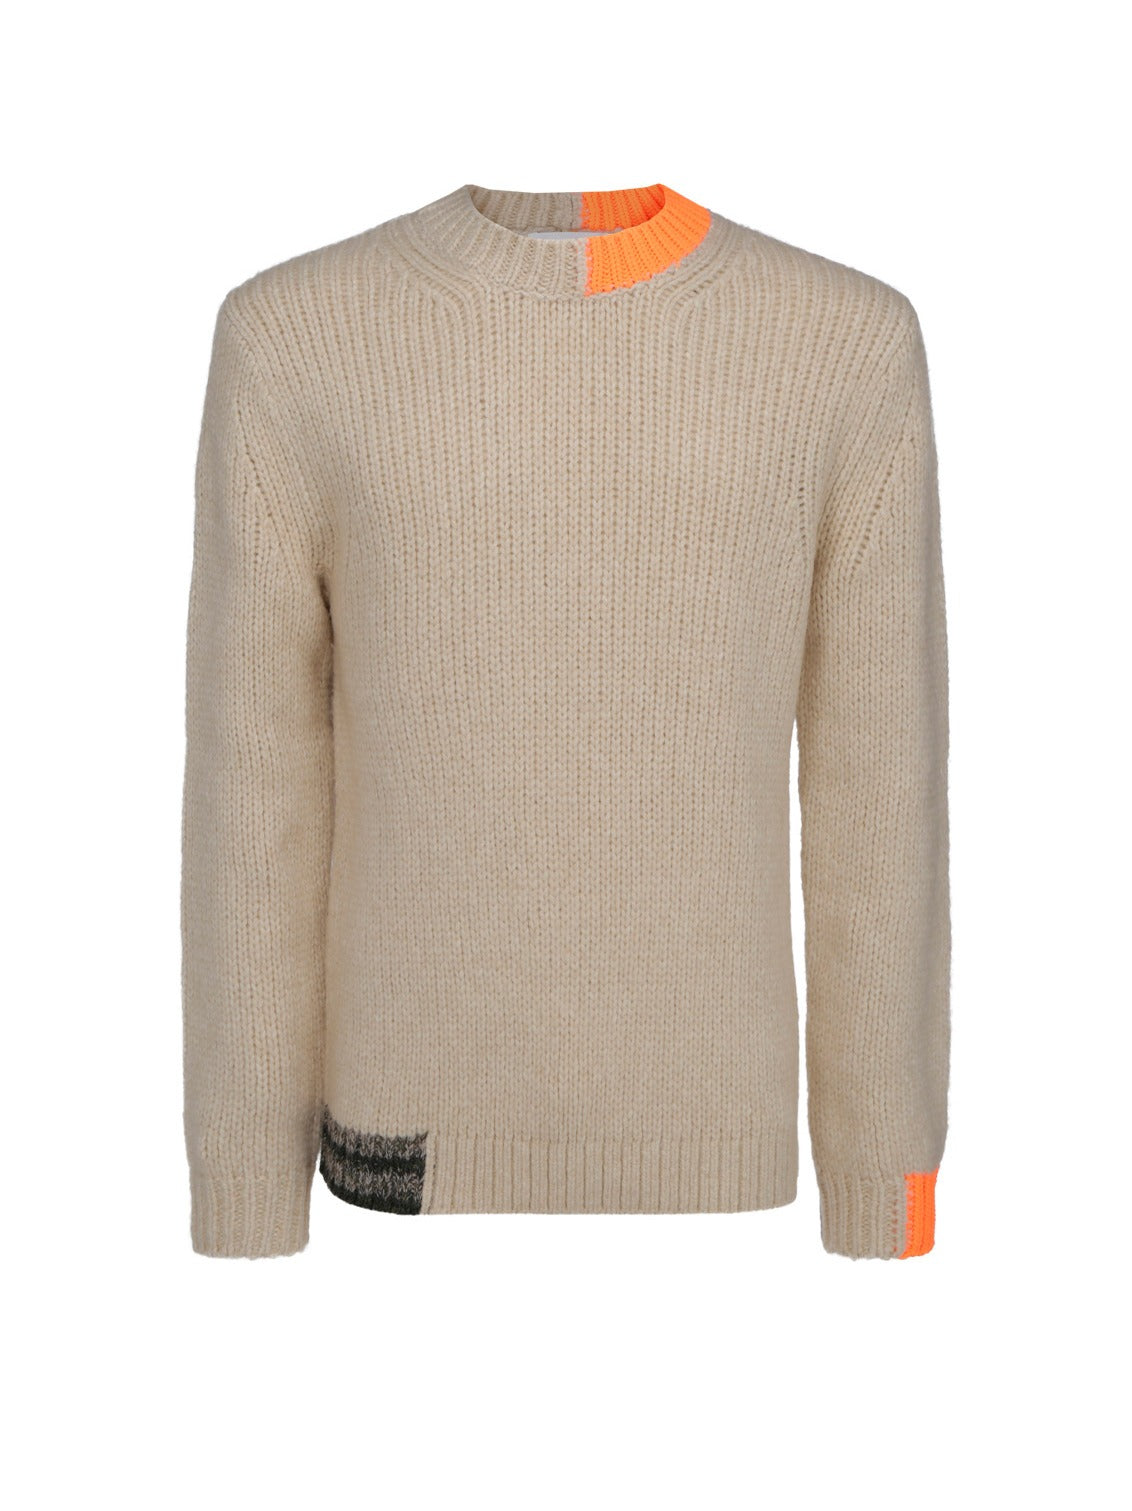 Helmut Lang Sweaters HELMUT LANG CREWNECK KNITTED SWEATER